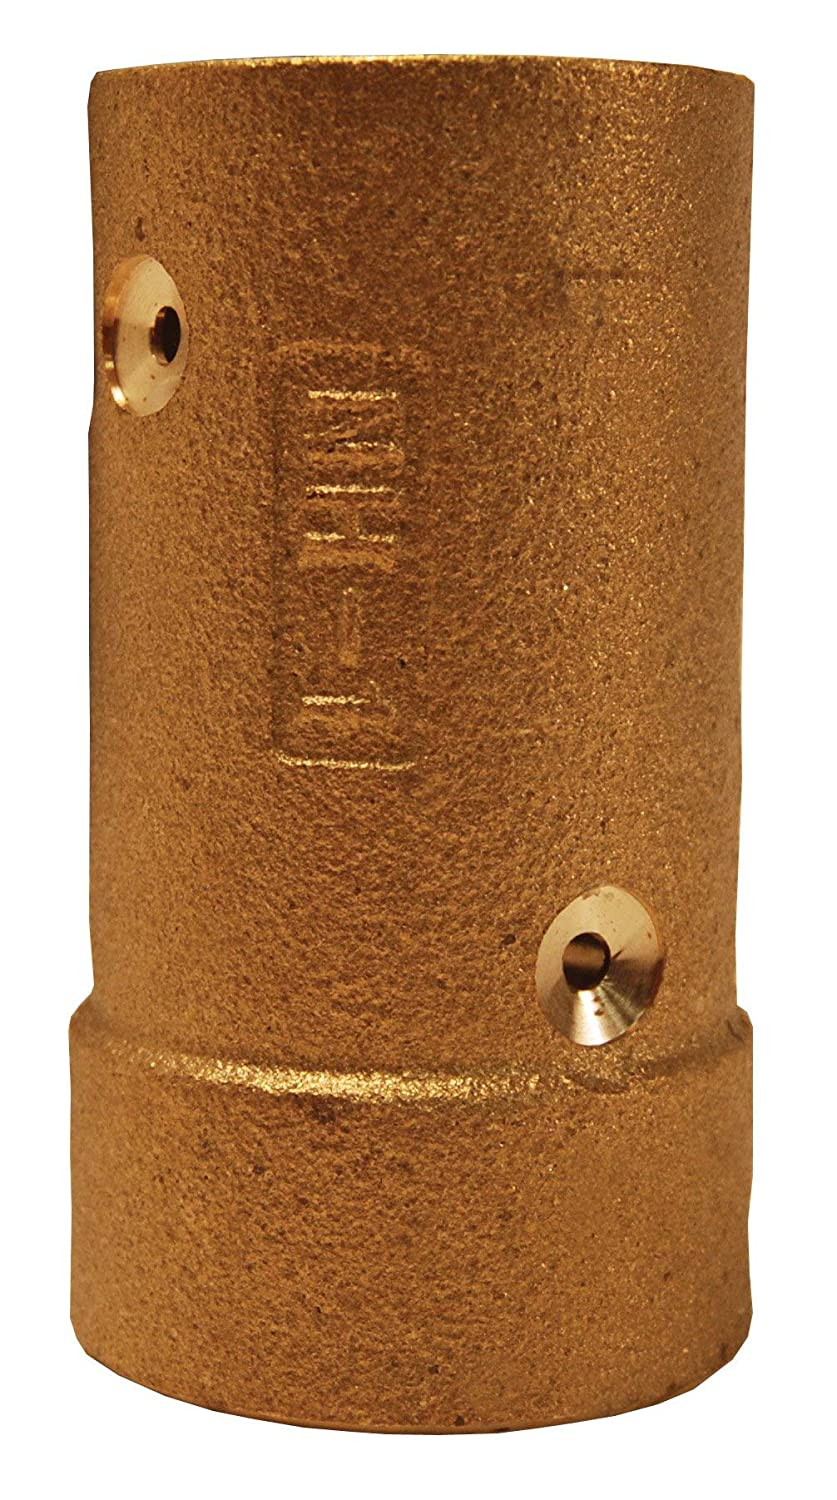 Brass 1 ID Dixon BNH100 1 Nozzle Holder with Screws Sand Blast Fitting